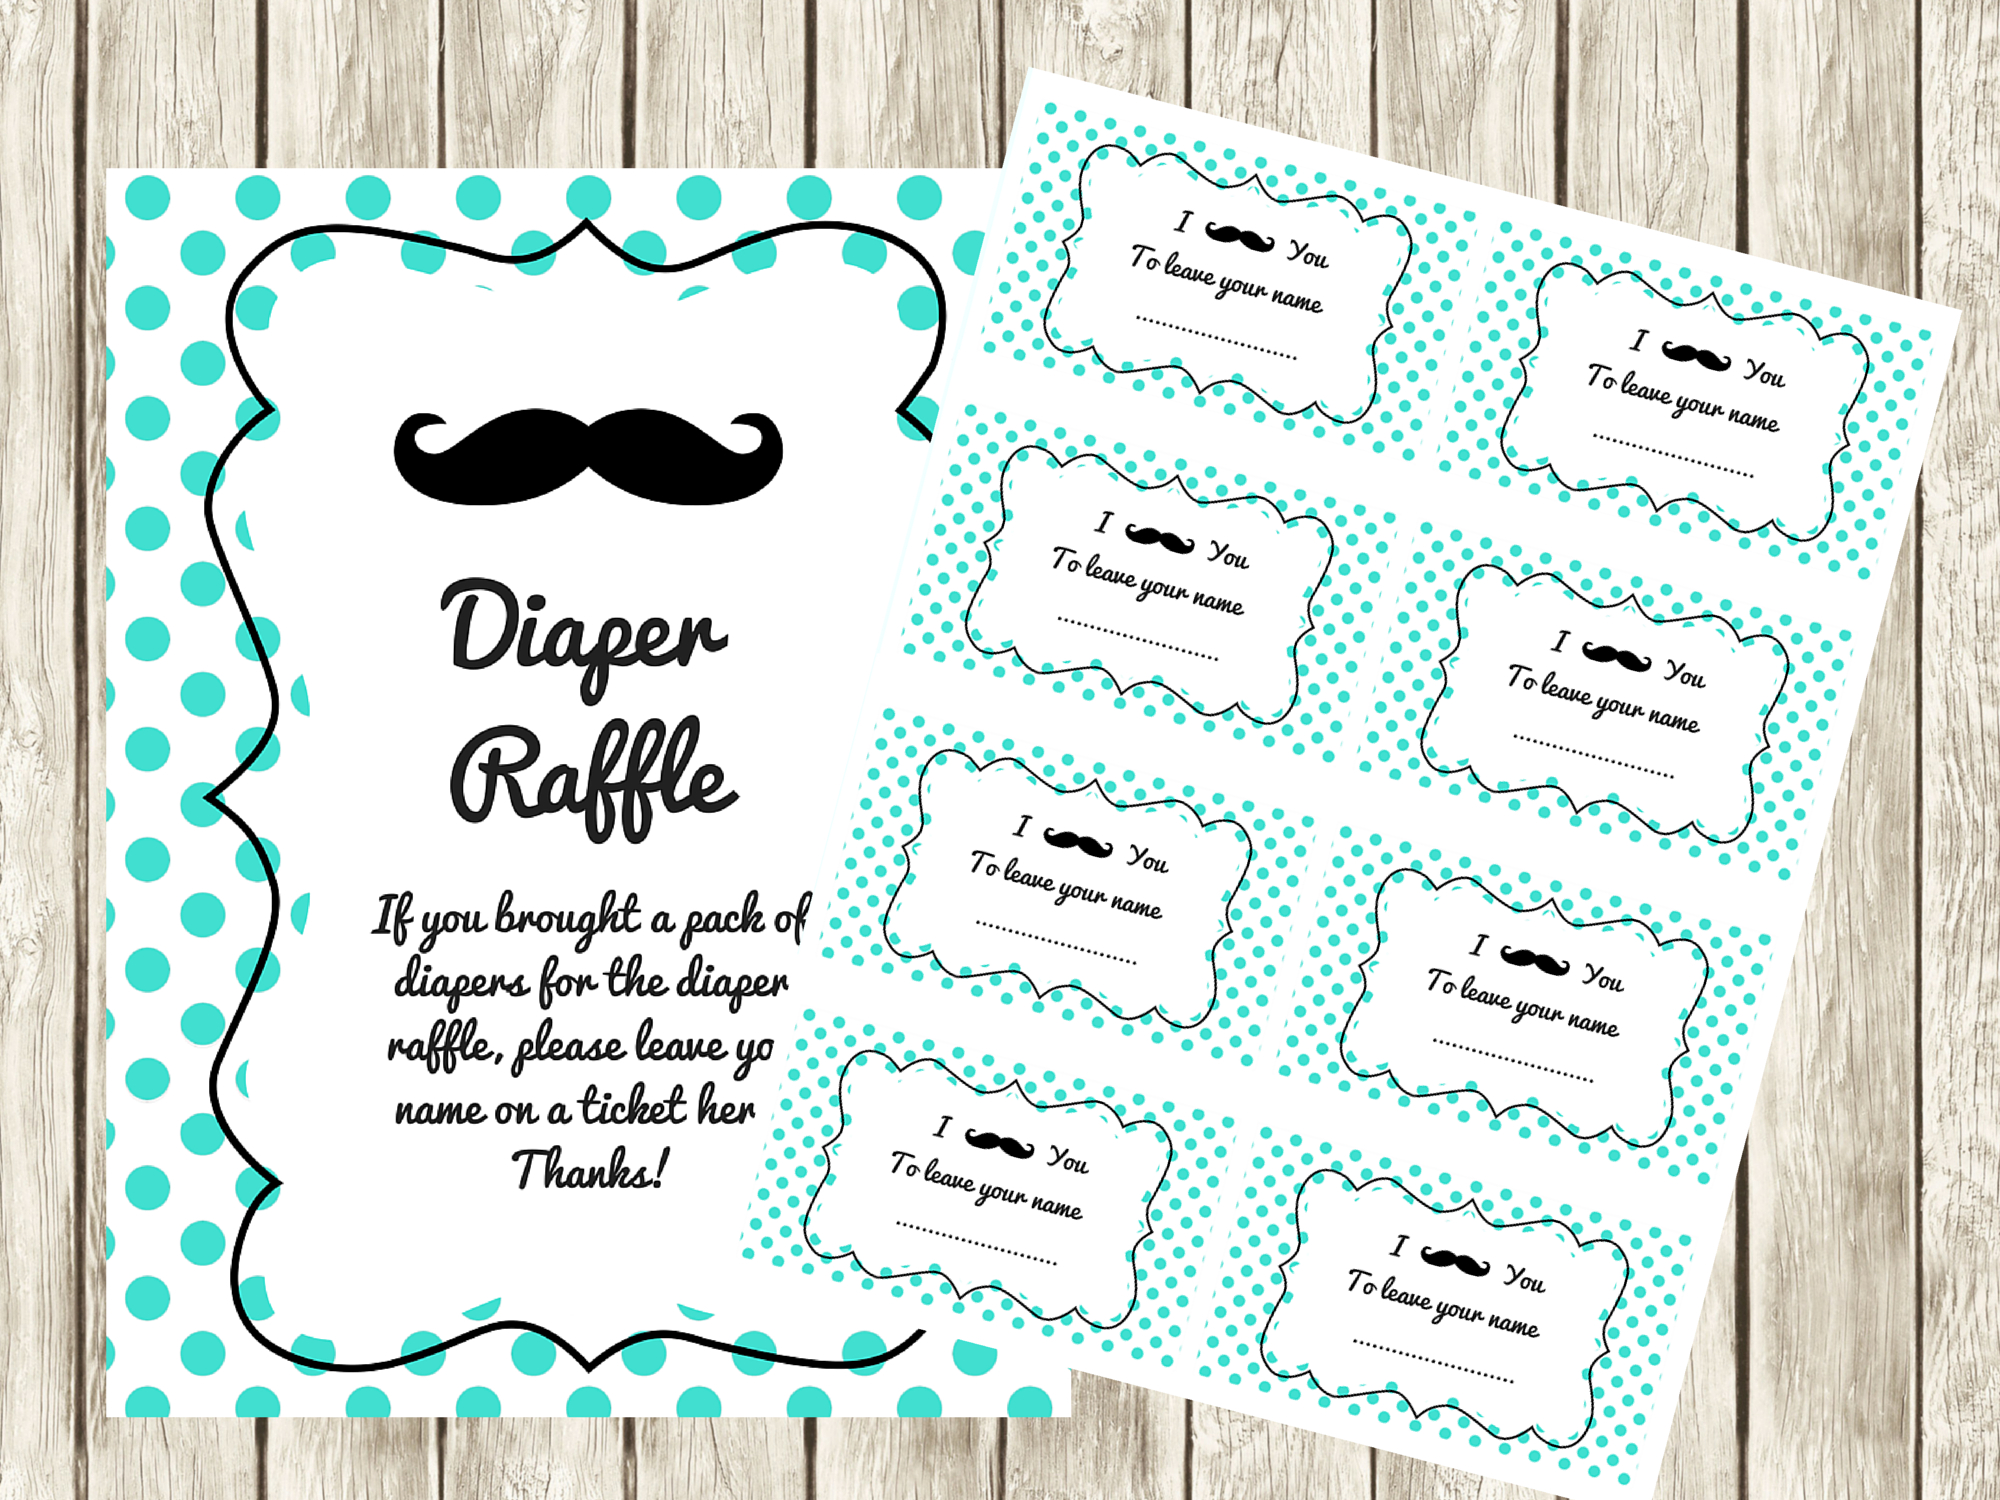 Free Printable Diaper Raffle Tickets For Baby Shower - Image - Free Printable Diaper Raffle Tickets For Boy Baby Shower